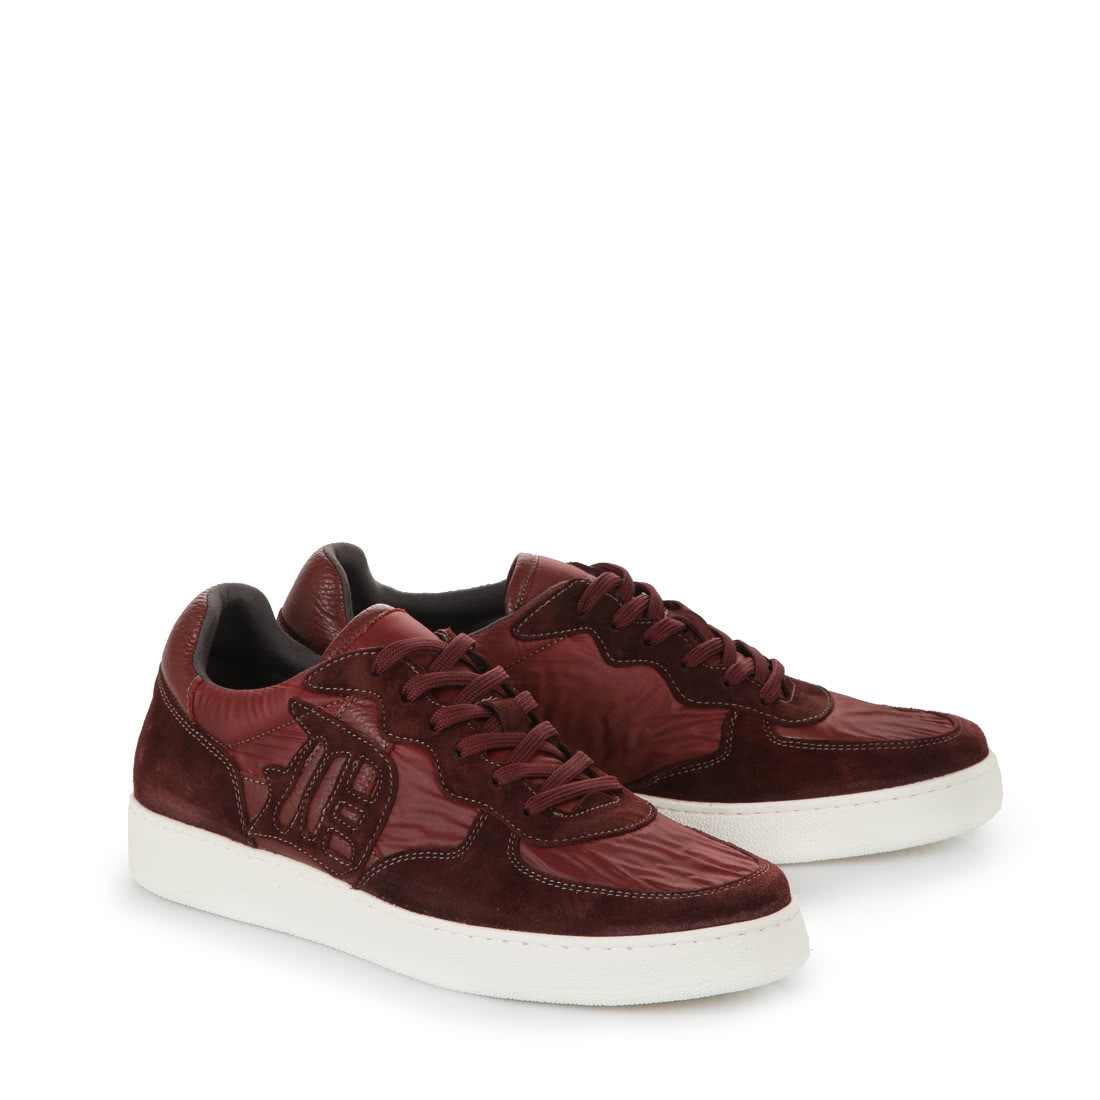 Buffalo sneakers shop online